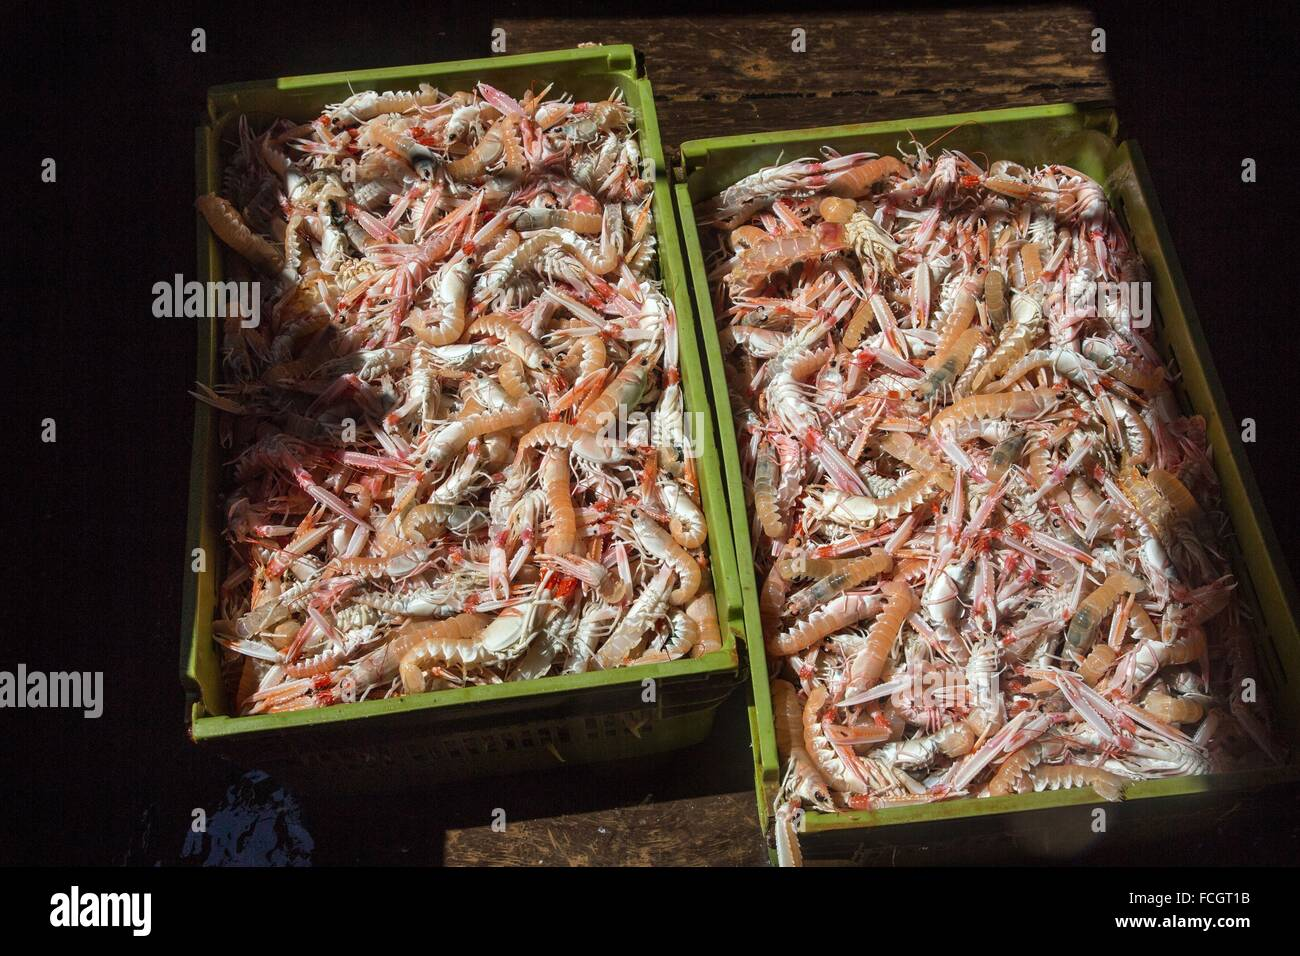 CRATES OF FRESHLY CAUGHT LIVE PRAWNS, SEA FISHING ON THE SHRIMP TRAWLER 'QUENTIN-GREGOIRE' OFF THE COAST - Stock Image